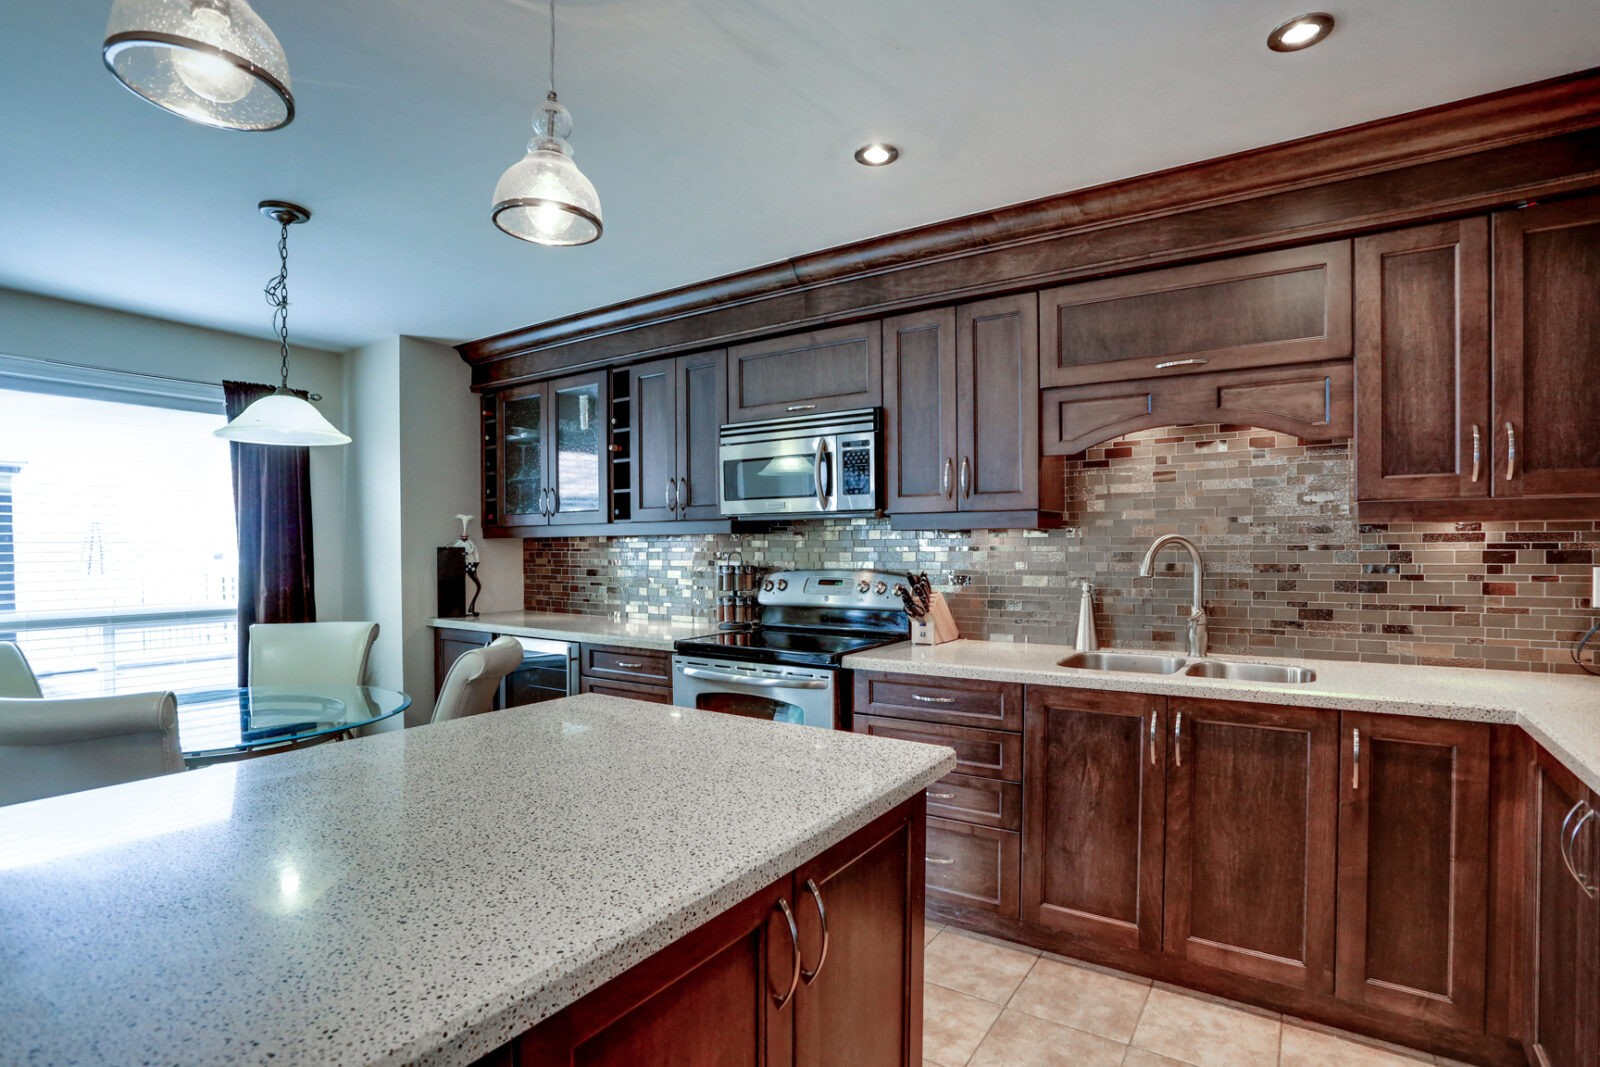 Backsplash Ideas To Transform A Kitchen Granite Transformations Blog